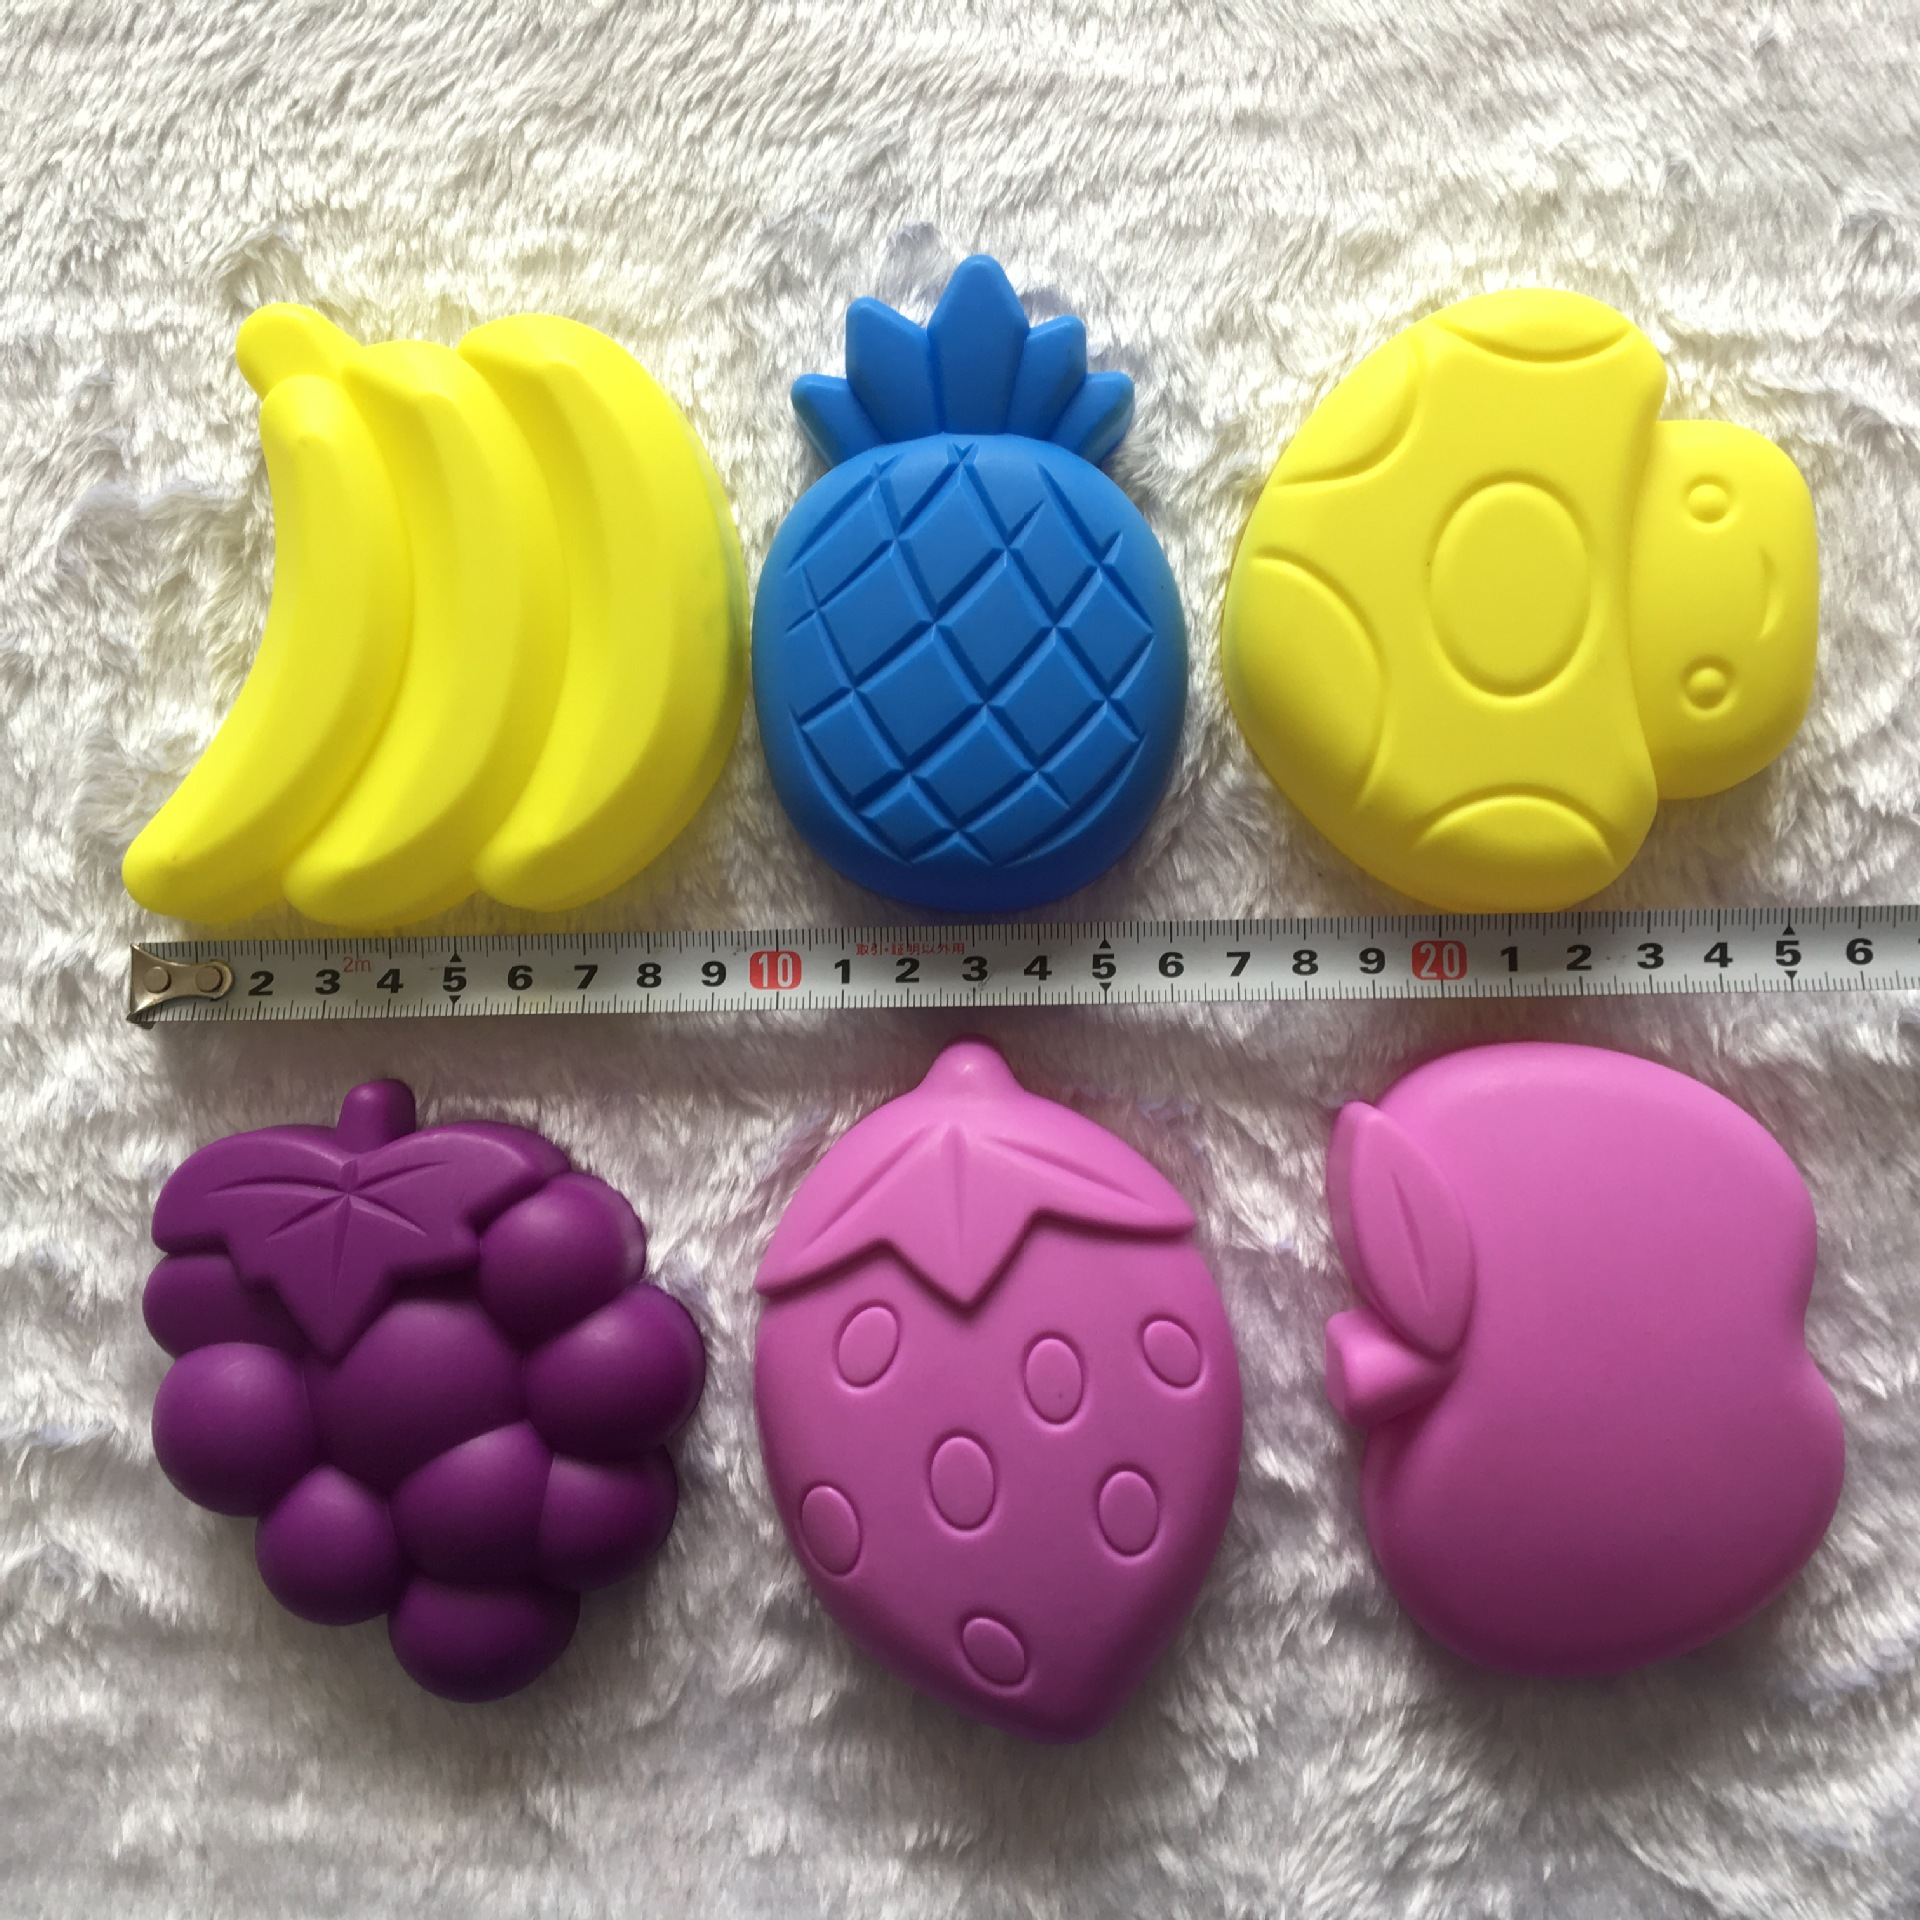 6pcs Child Kid Model Building Kits Portable Fruit Sand Clay Mold Building